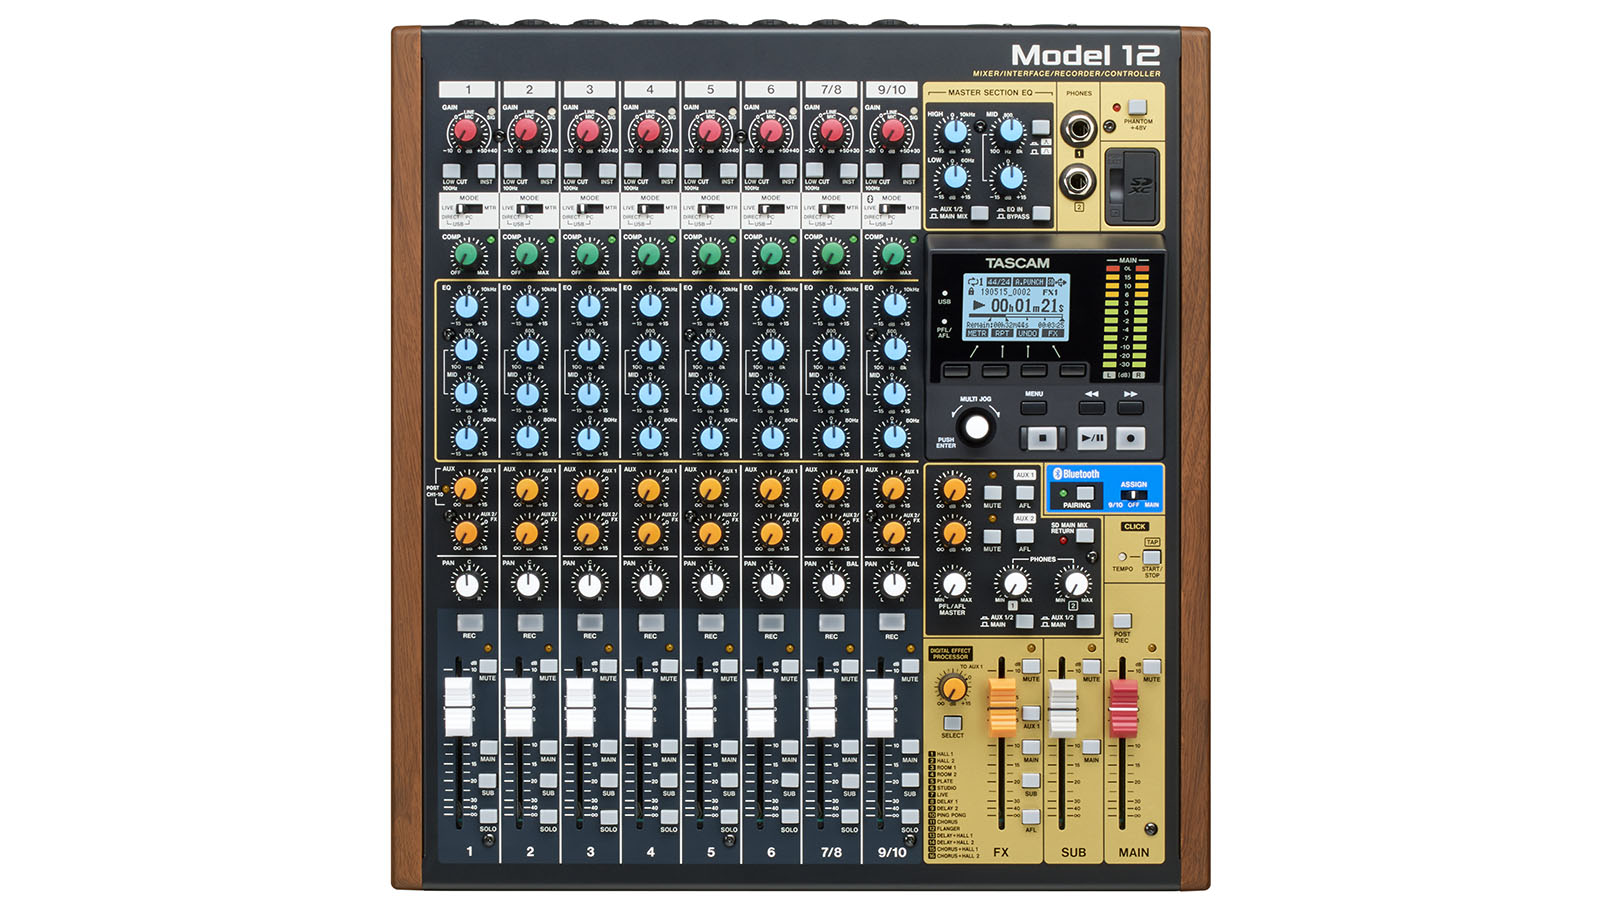 First Look : TASCAM Model 12 Mixer/Recorder/Interface